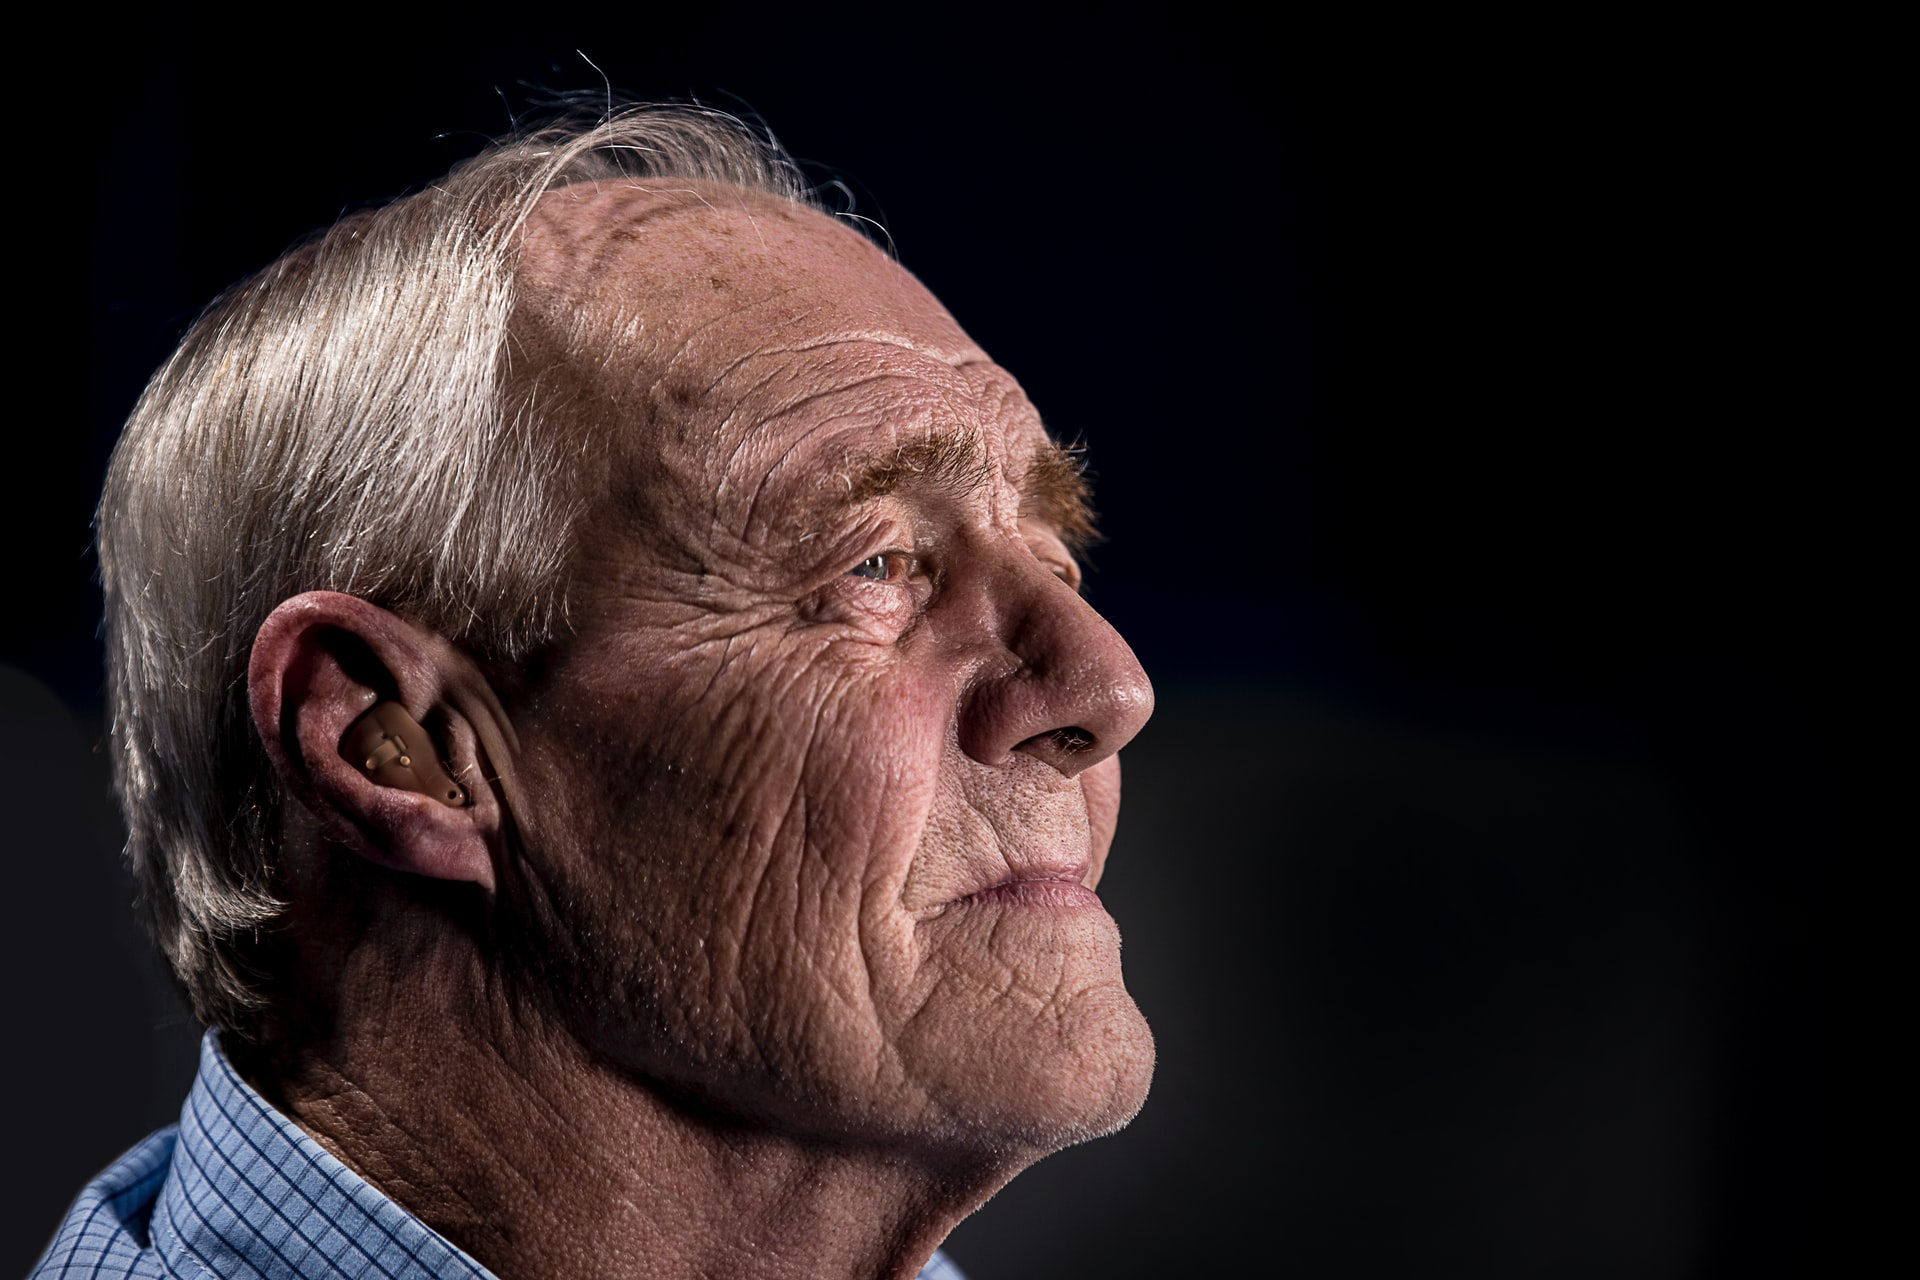 People with dementia can wander and get lost at any stage of the disease.